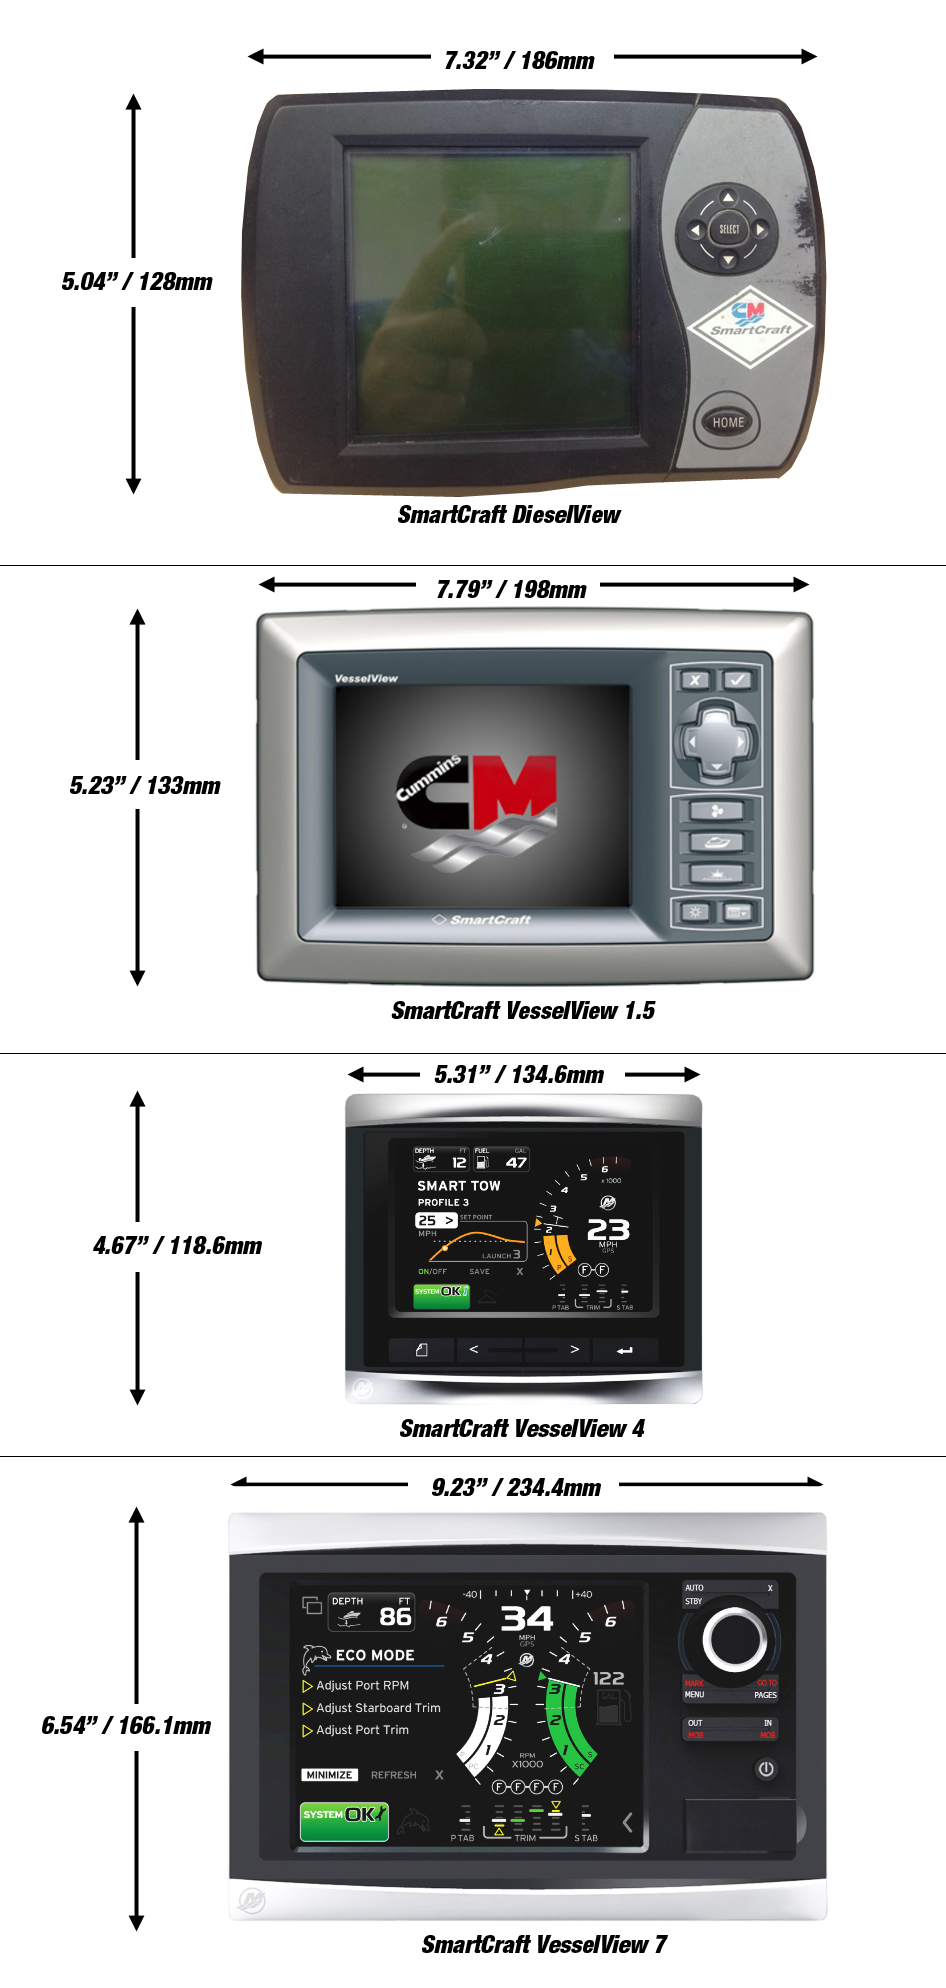 Cummins Dieselview Display Upgrade Options Seaboard Marine Smartcraft Schematic Vesselview Digital Dimensions